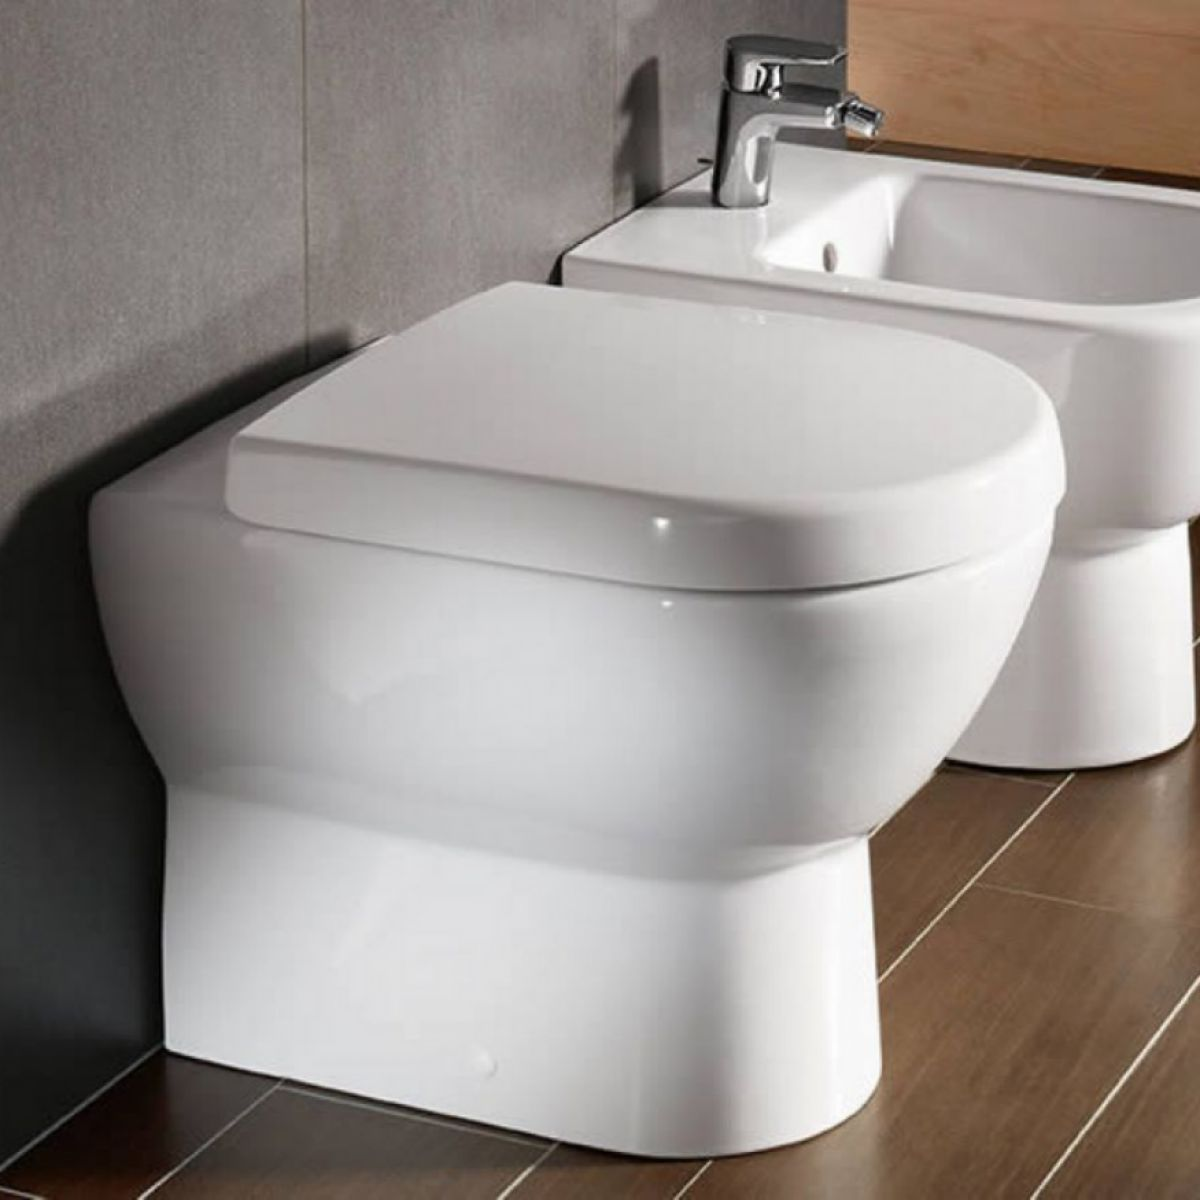 villeroy boch subway floorstanding toilet uk bathrooms. Black Bedroom Furniture Sets. Home Design Ideas